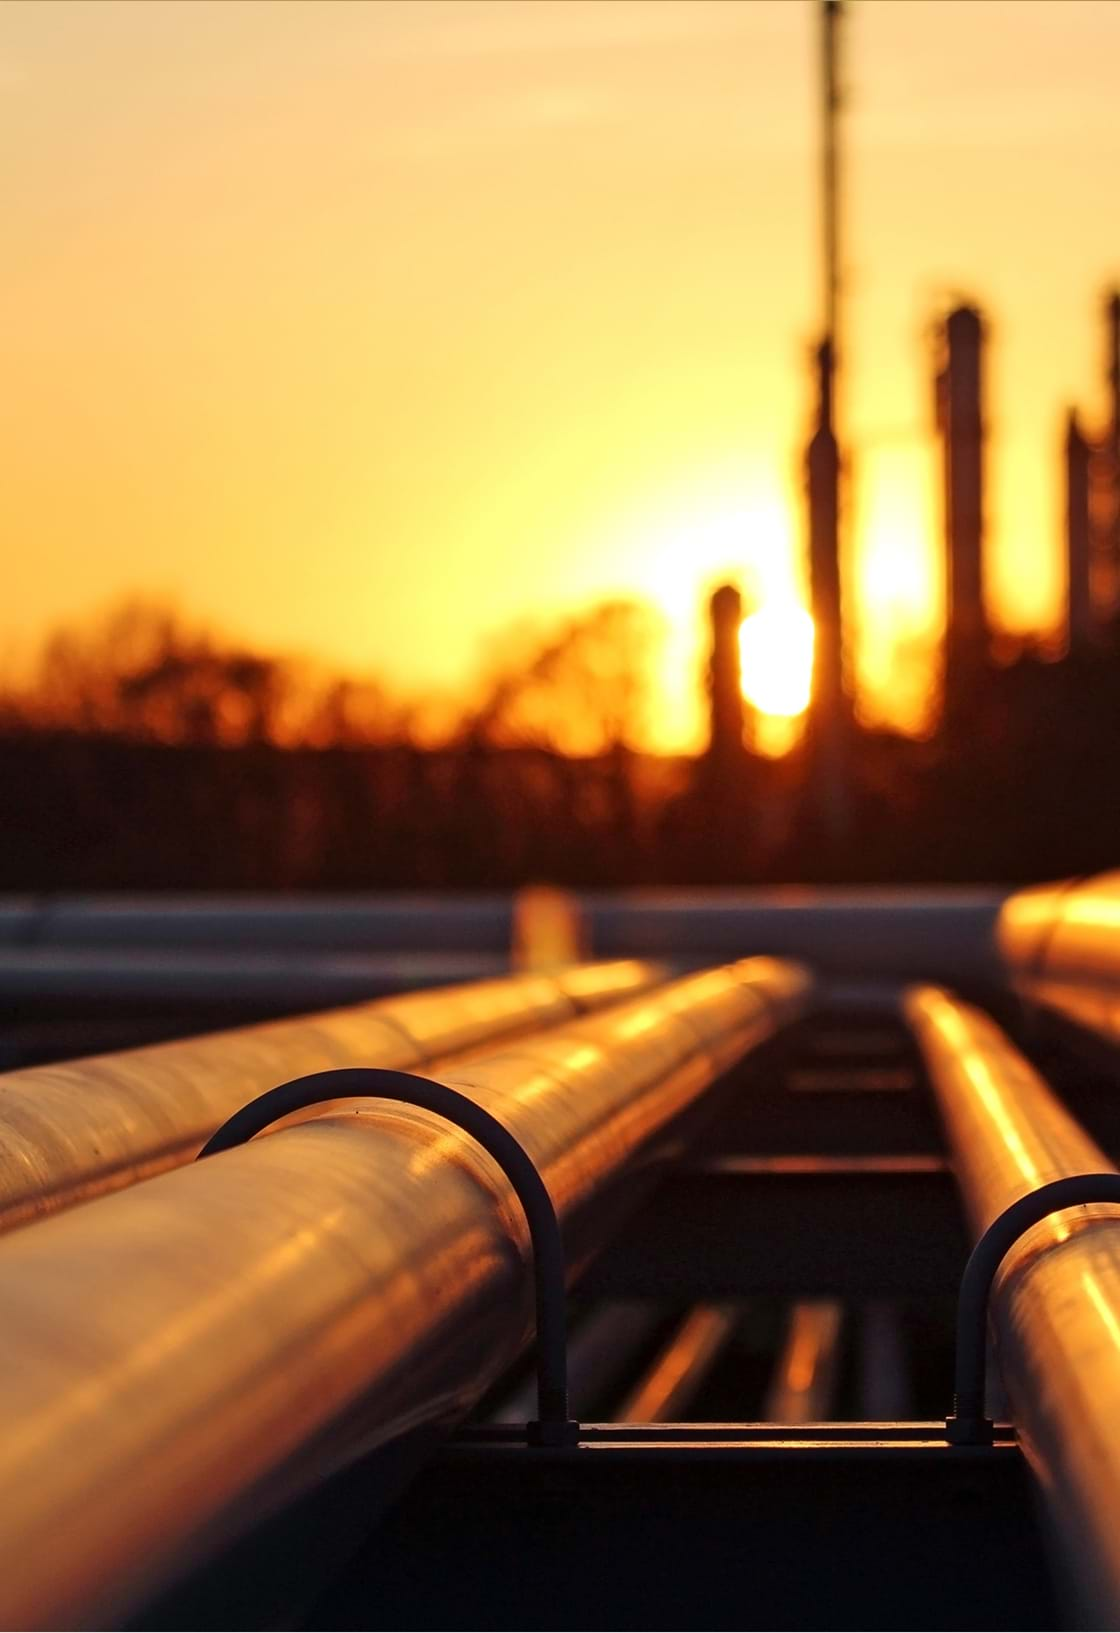 image of a power plant and pipelines, sunset